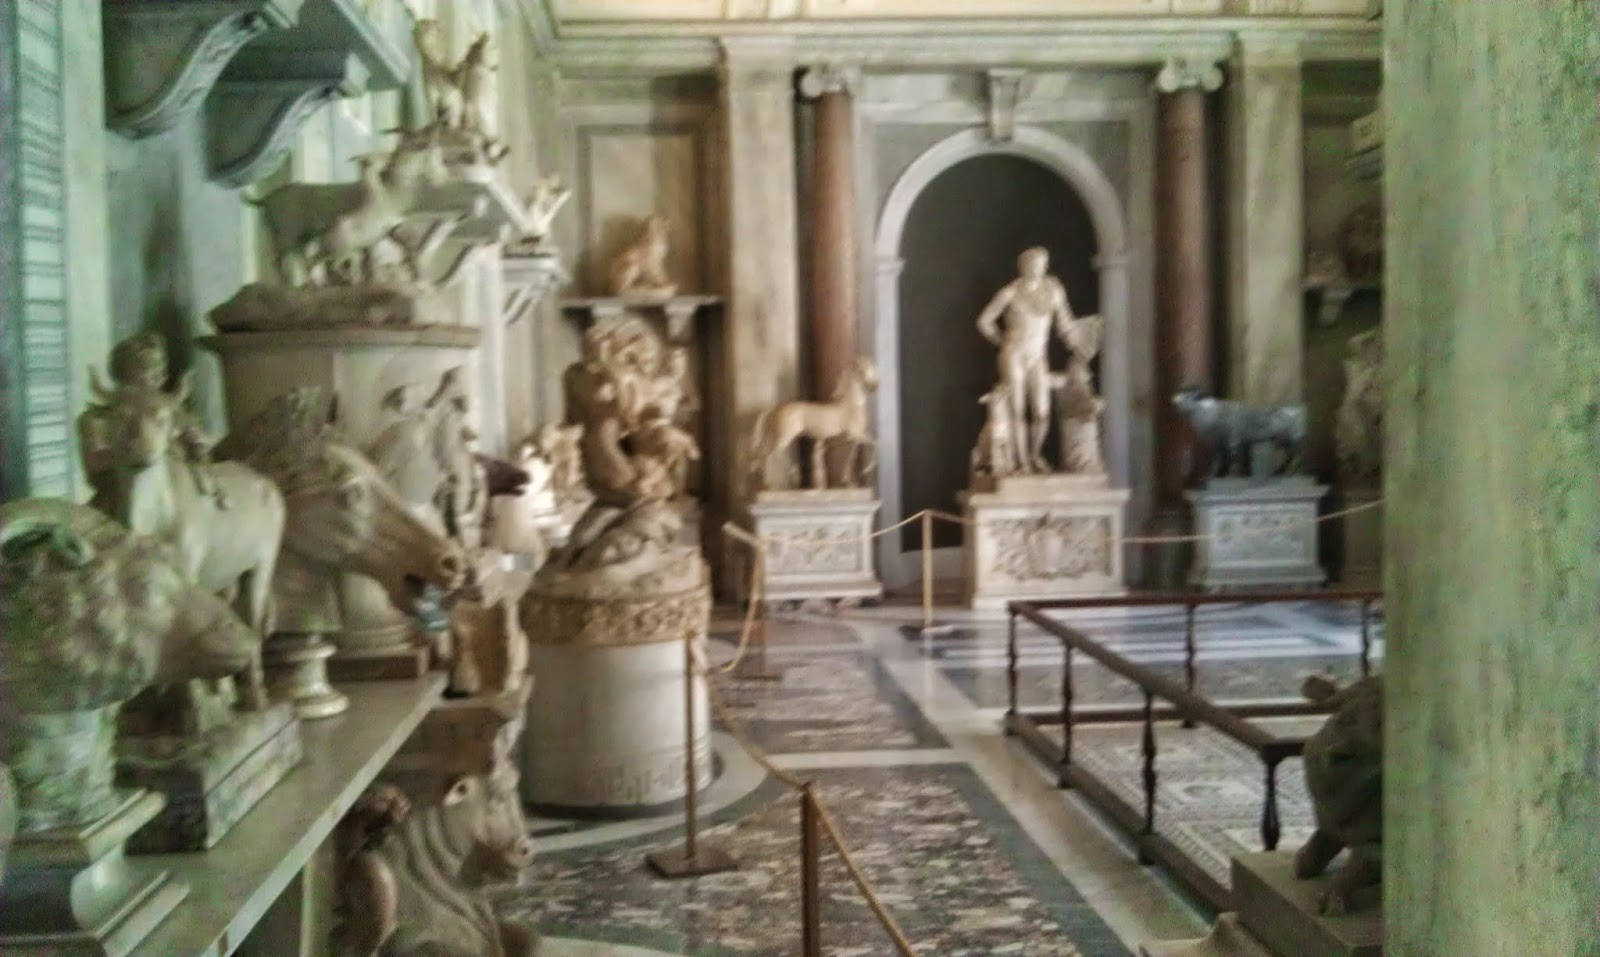 The Garden of Statues - Vatican Museum